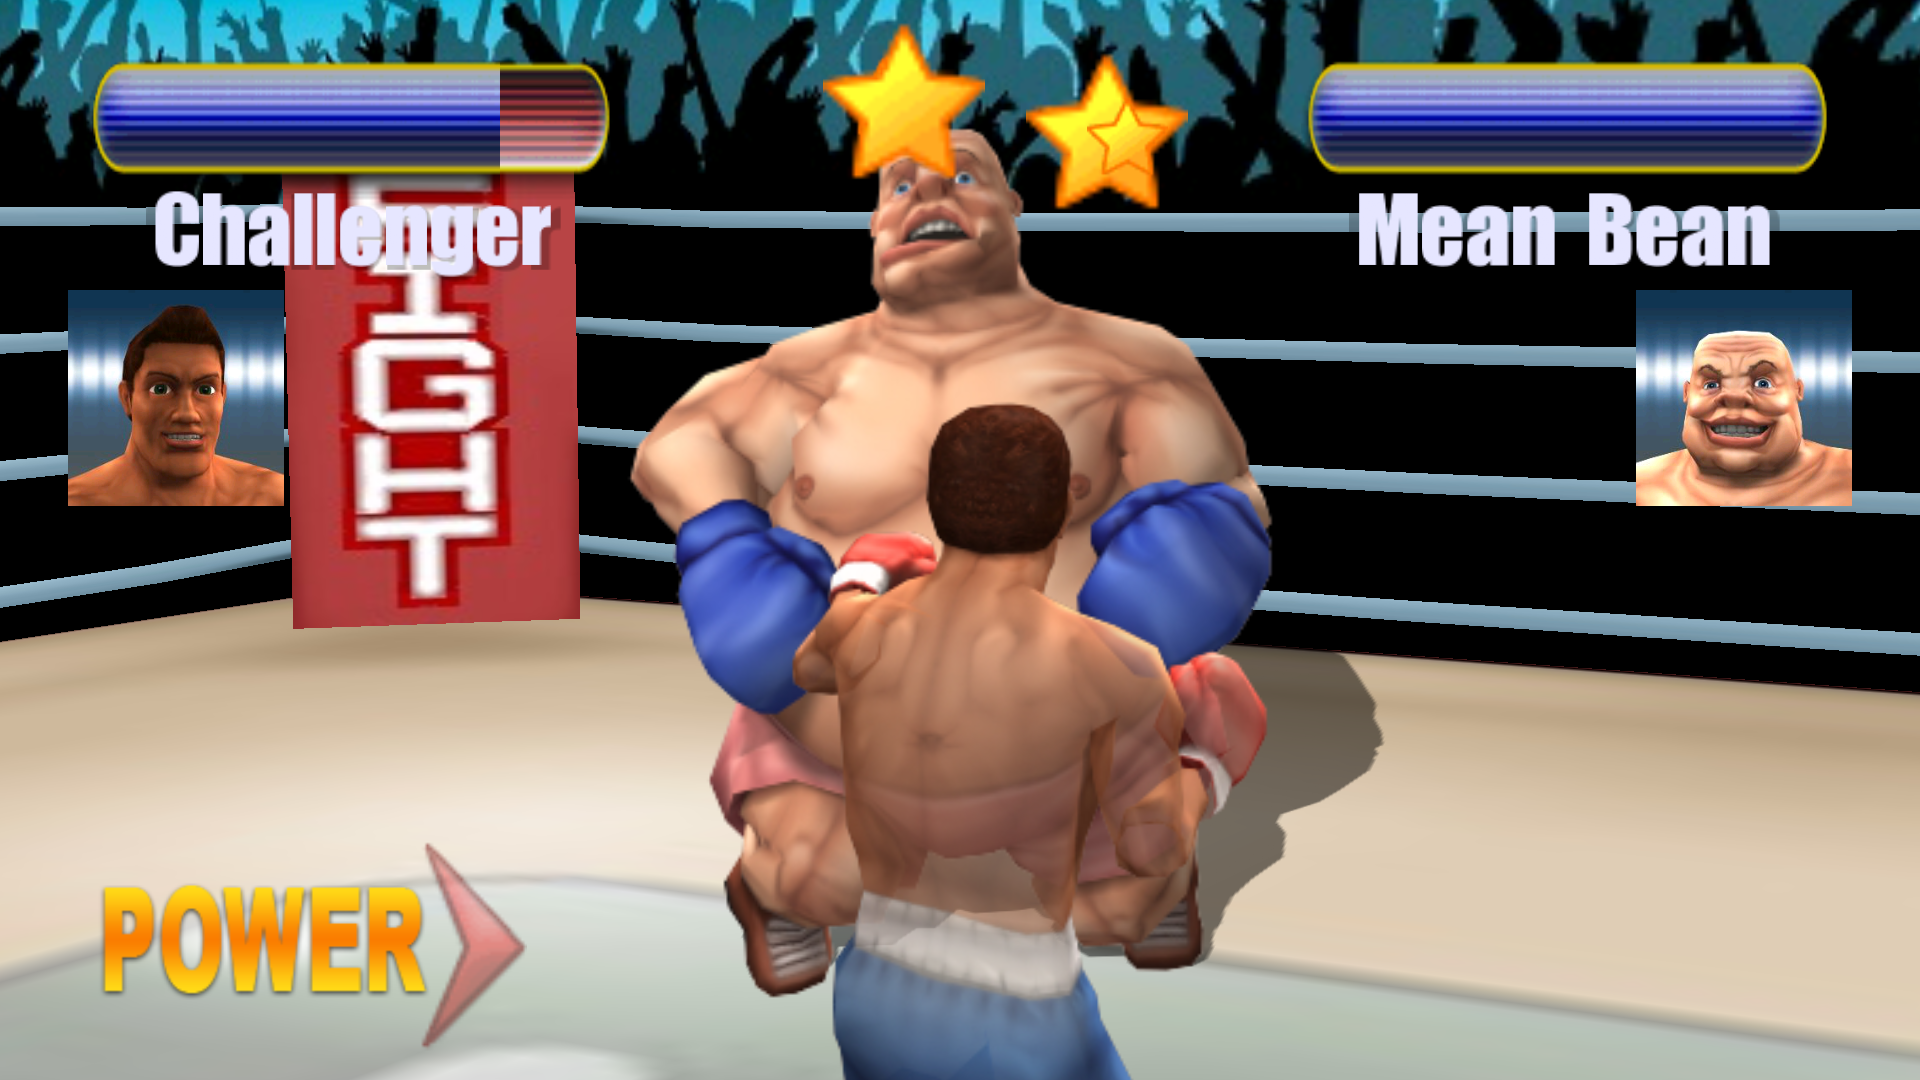 Pocket Boxing screenshot 20